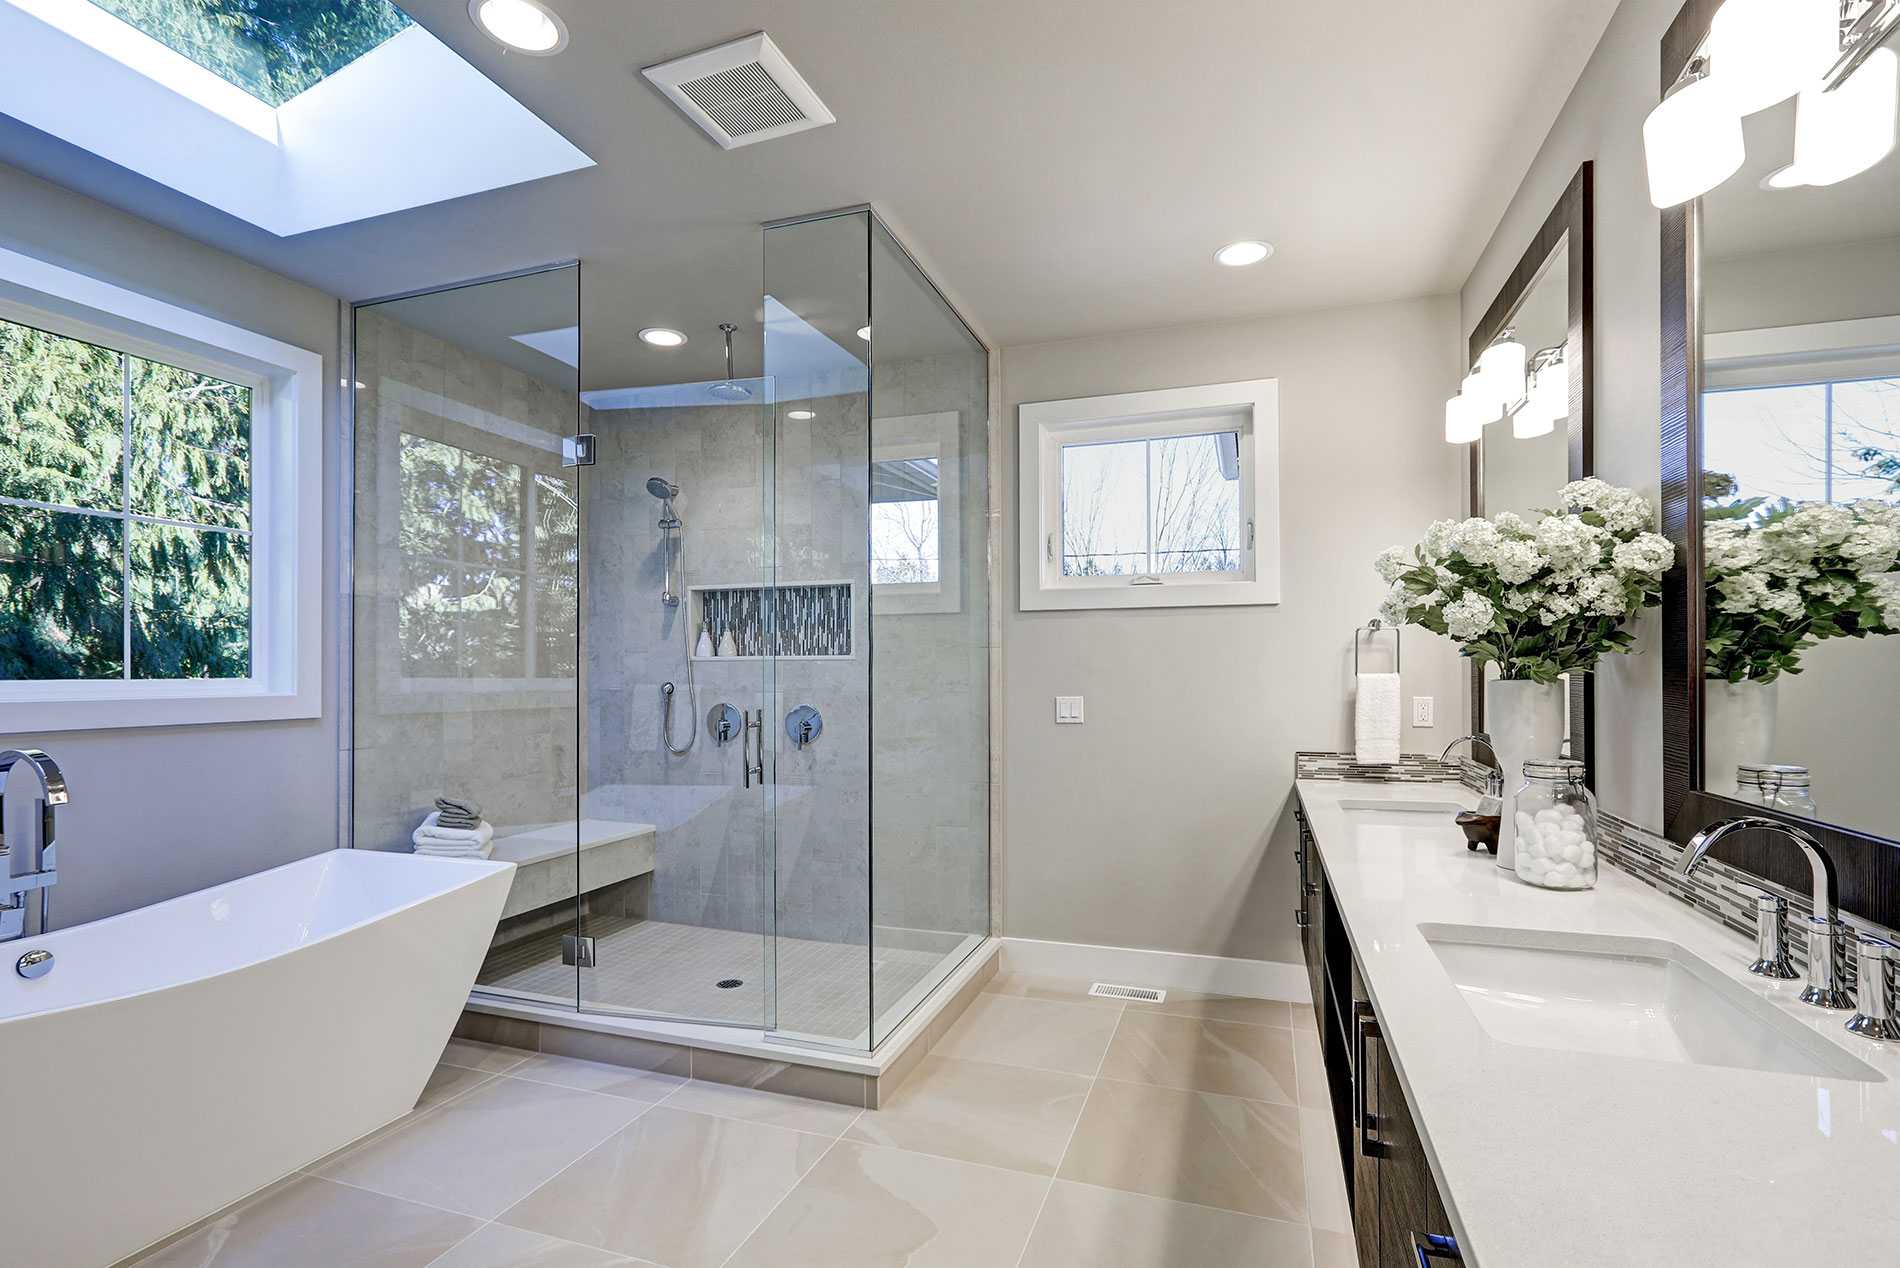 Average Cost Of A Master Bathroom, Approximate Cost To Remodel A Bathroom